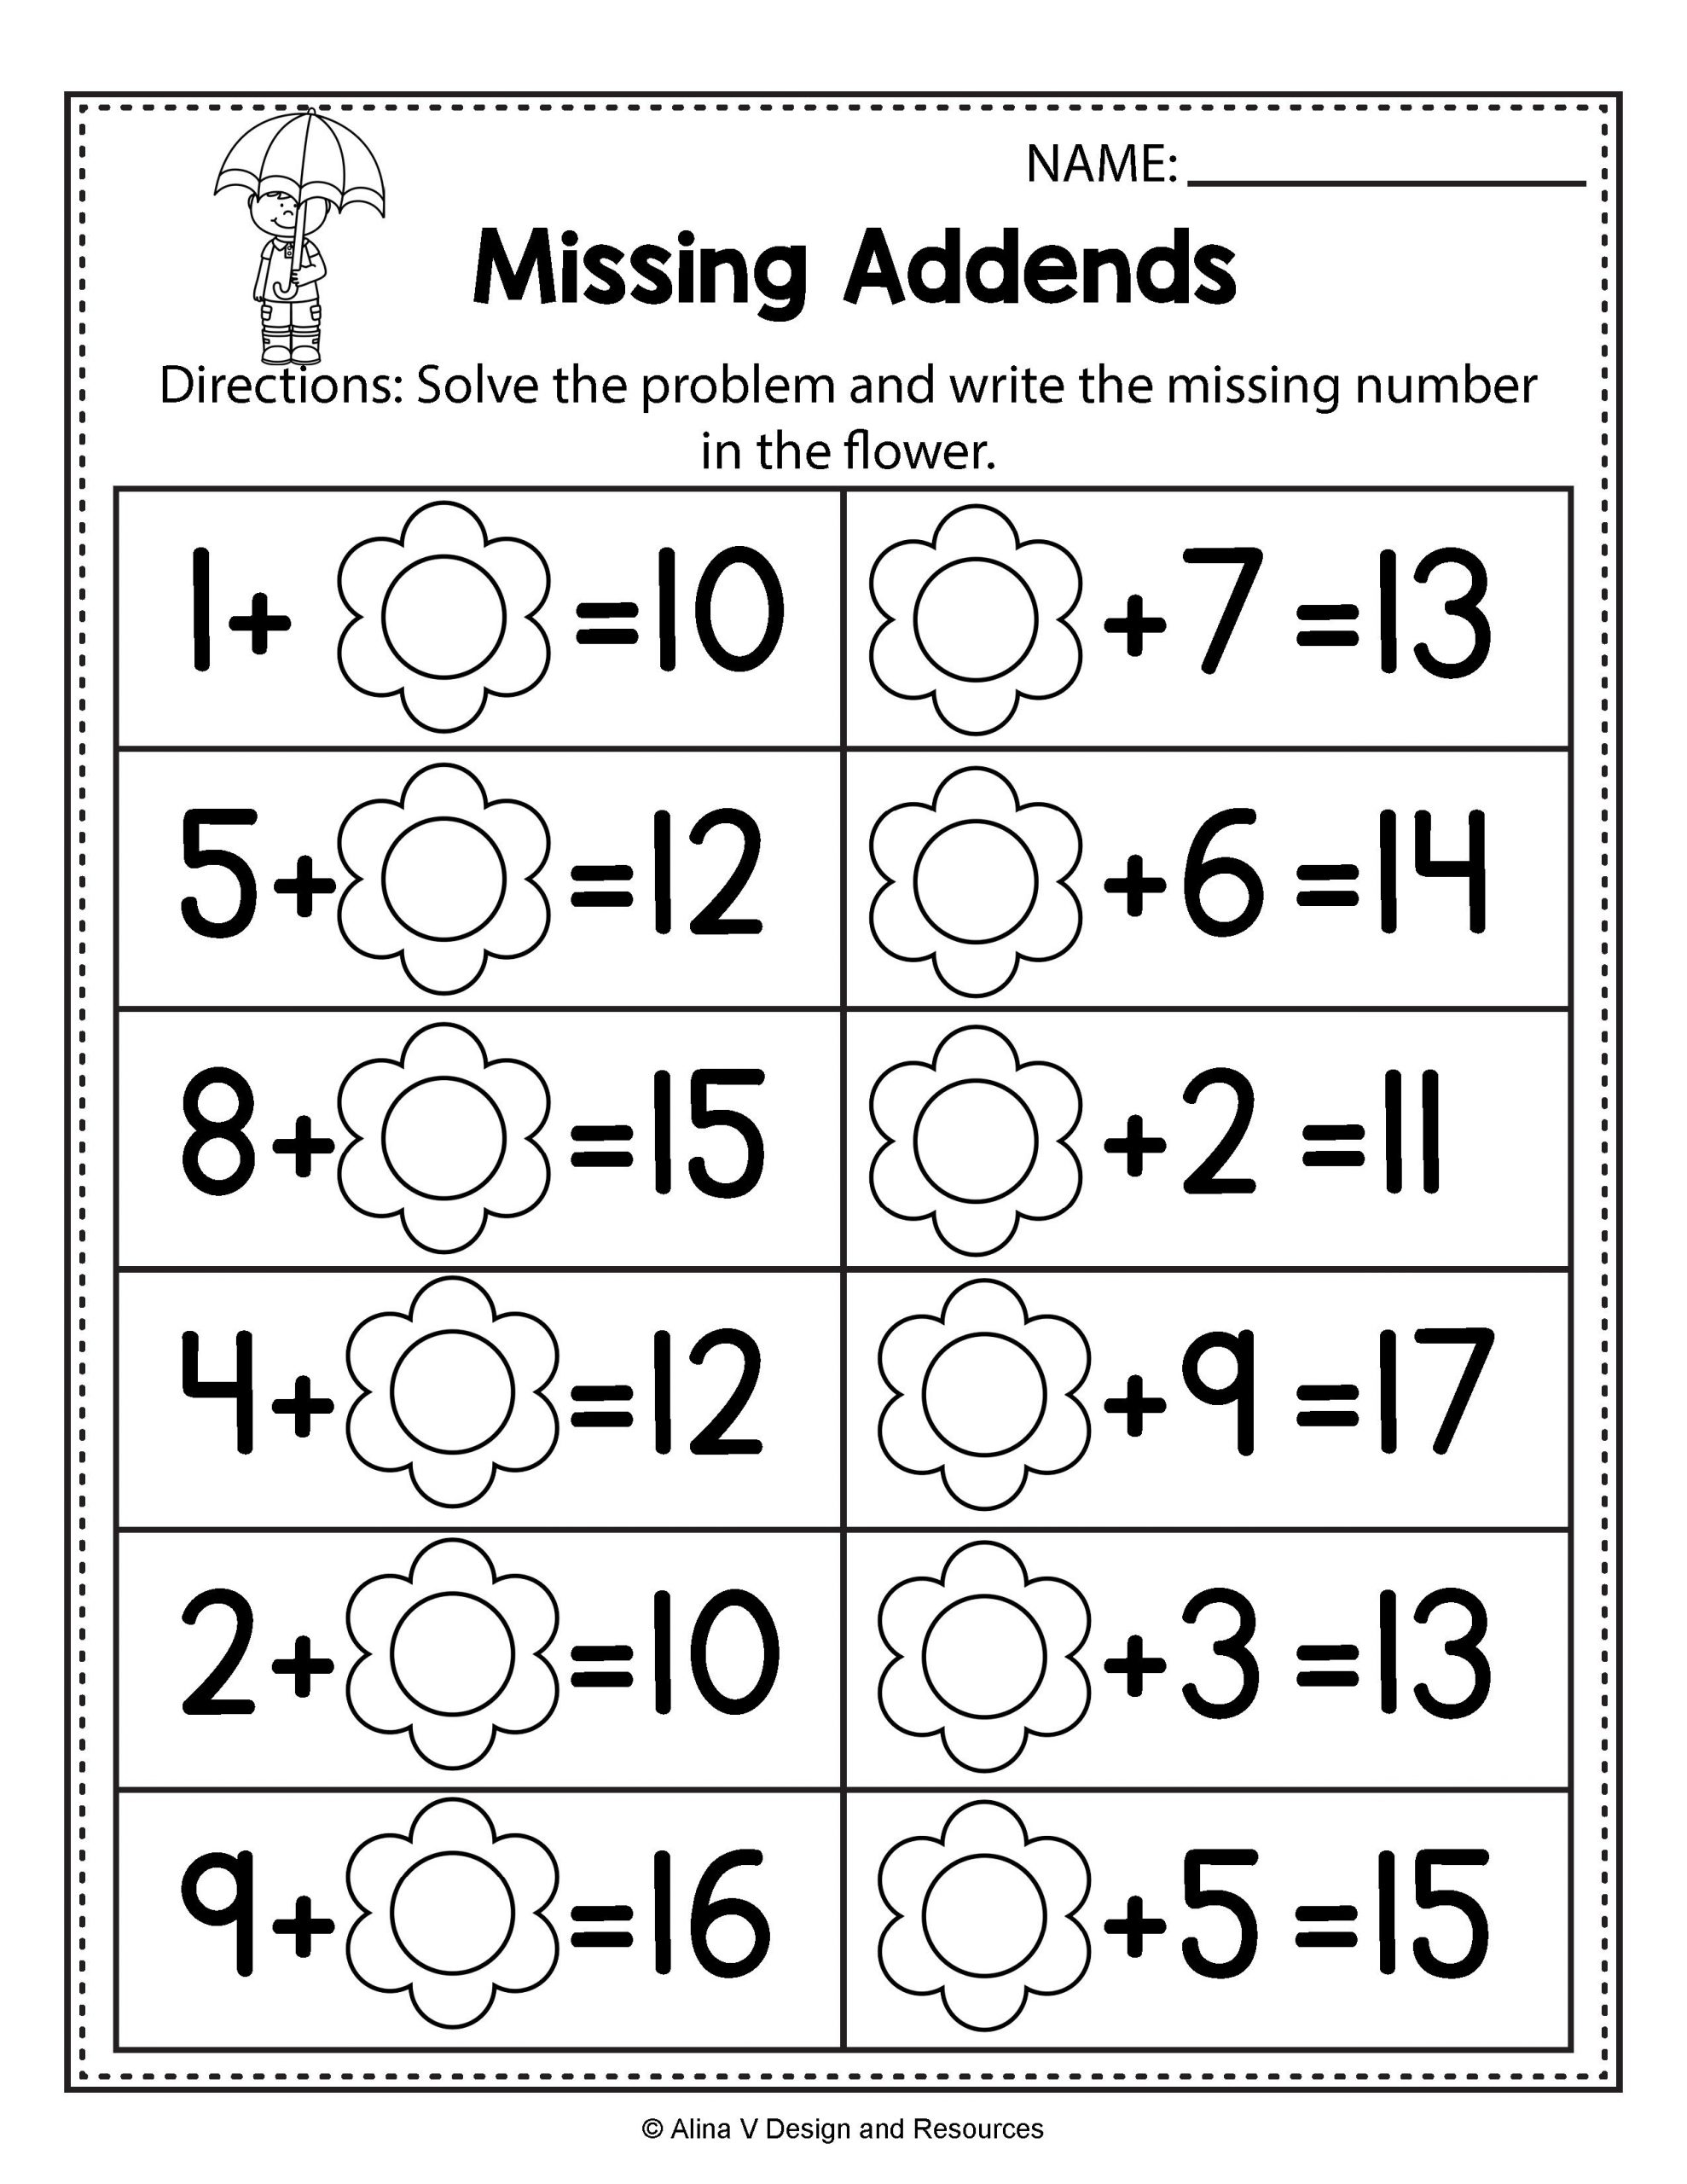 30 Sequencing Of Events Worksheets